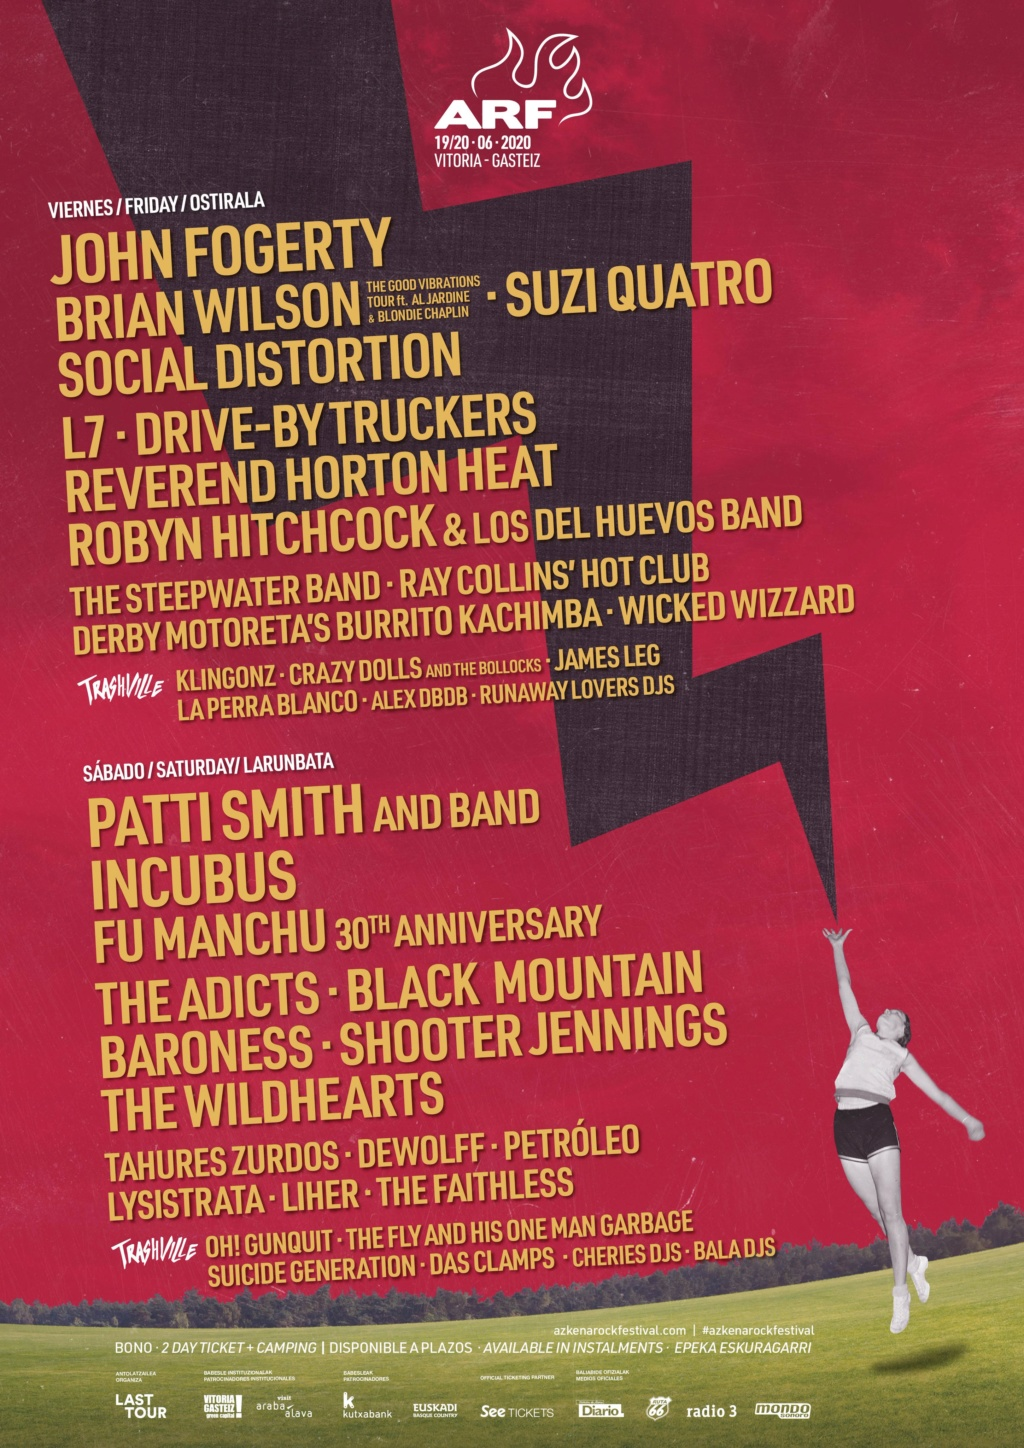 Azkena Rock Festival 2021. 17-18-19-Junio!!! 3 días. Iggy Pop!!!!. Black Mountain, Brian Wilson, Fu Manchu, L7, Patti Smith, Social Distortion.... - Página 12 Eqgam810